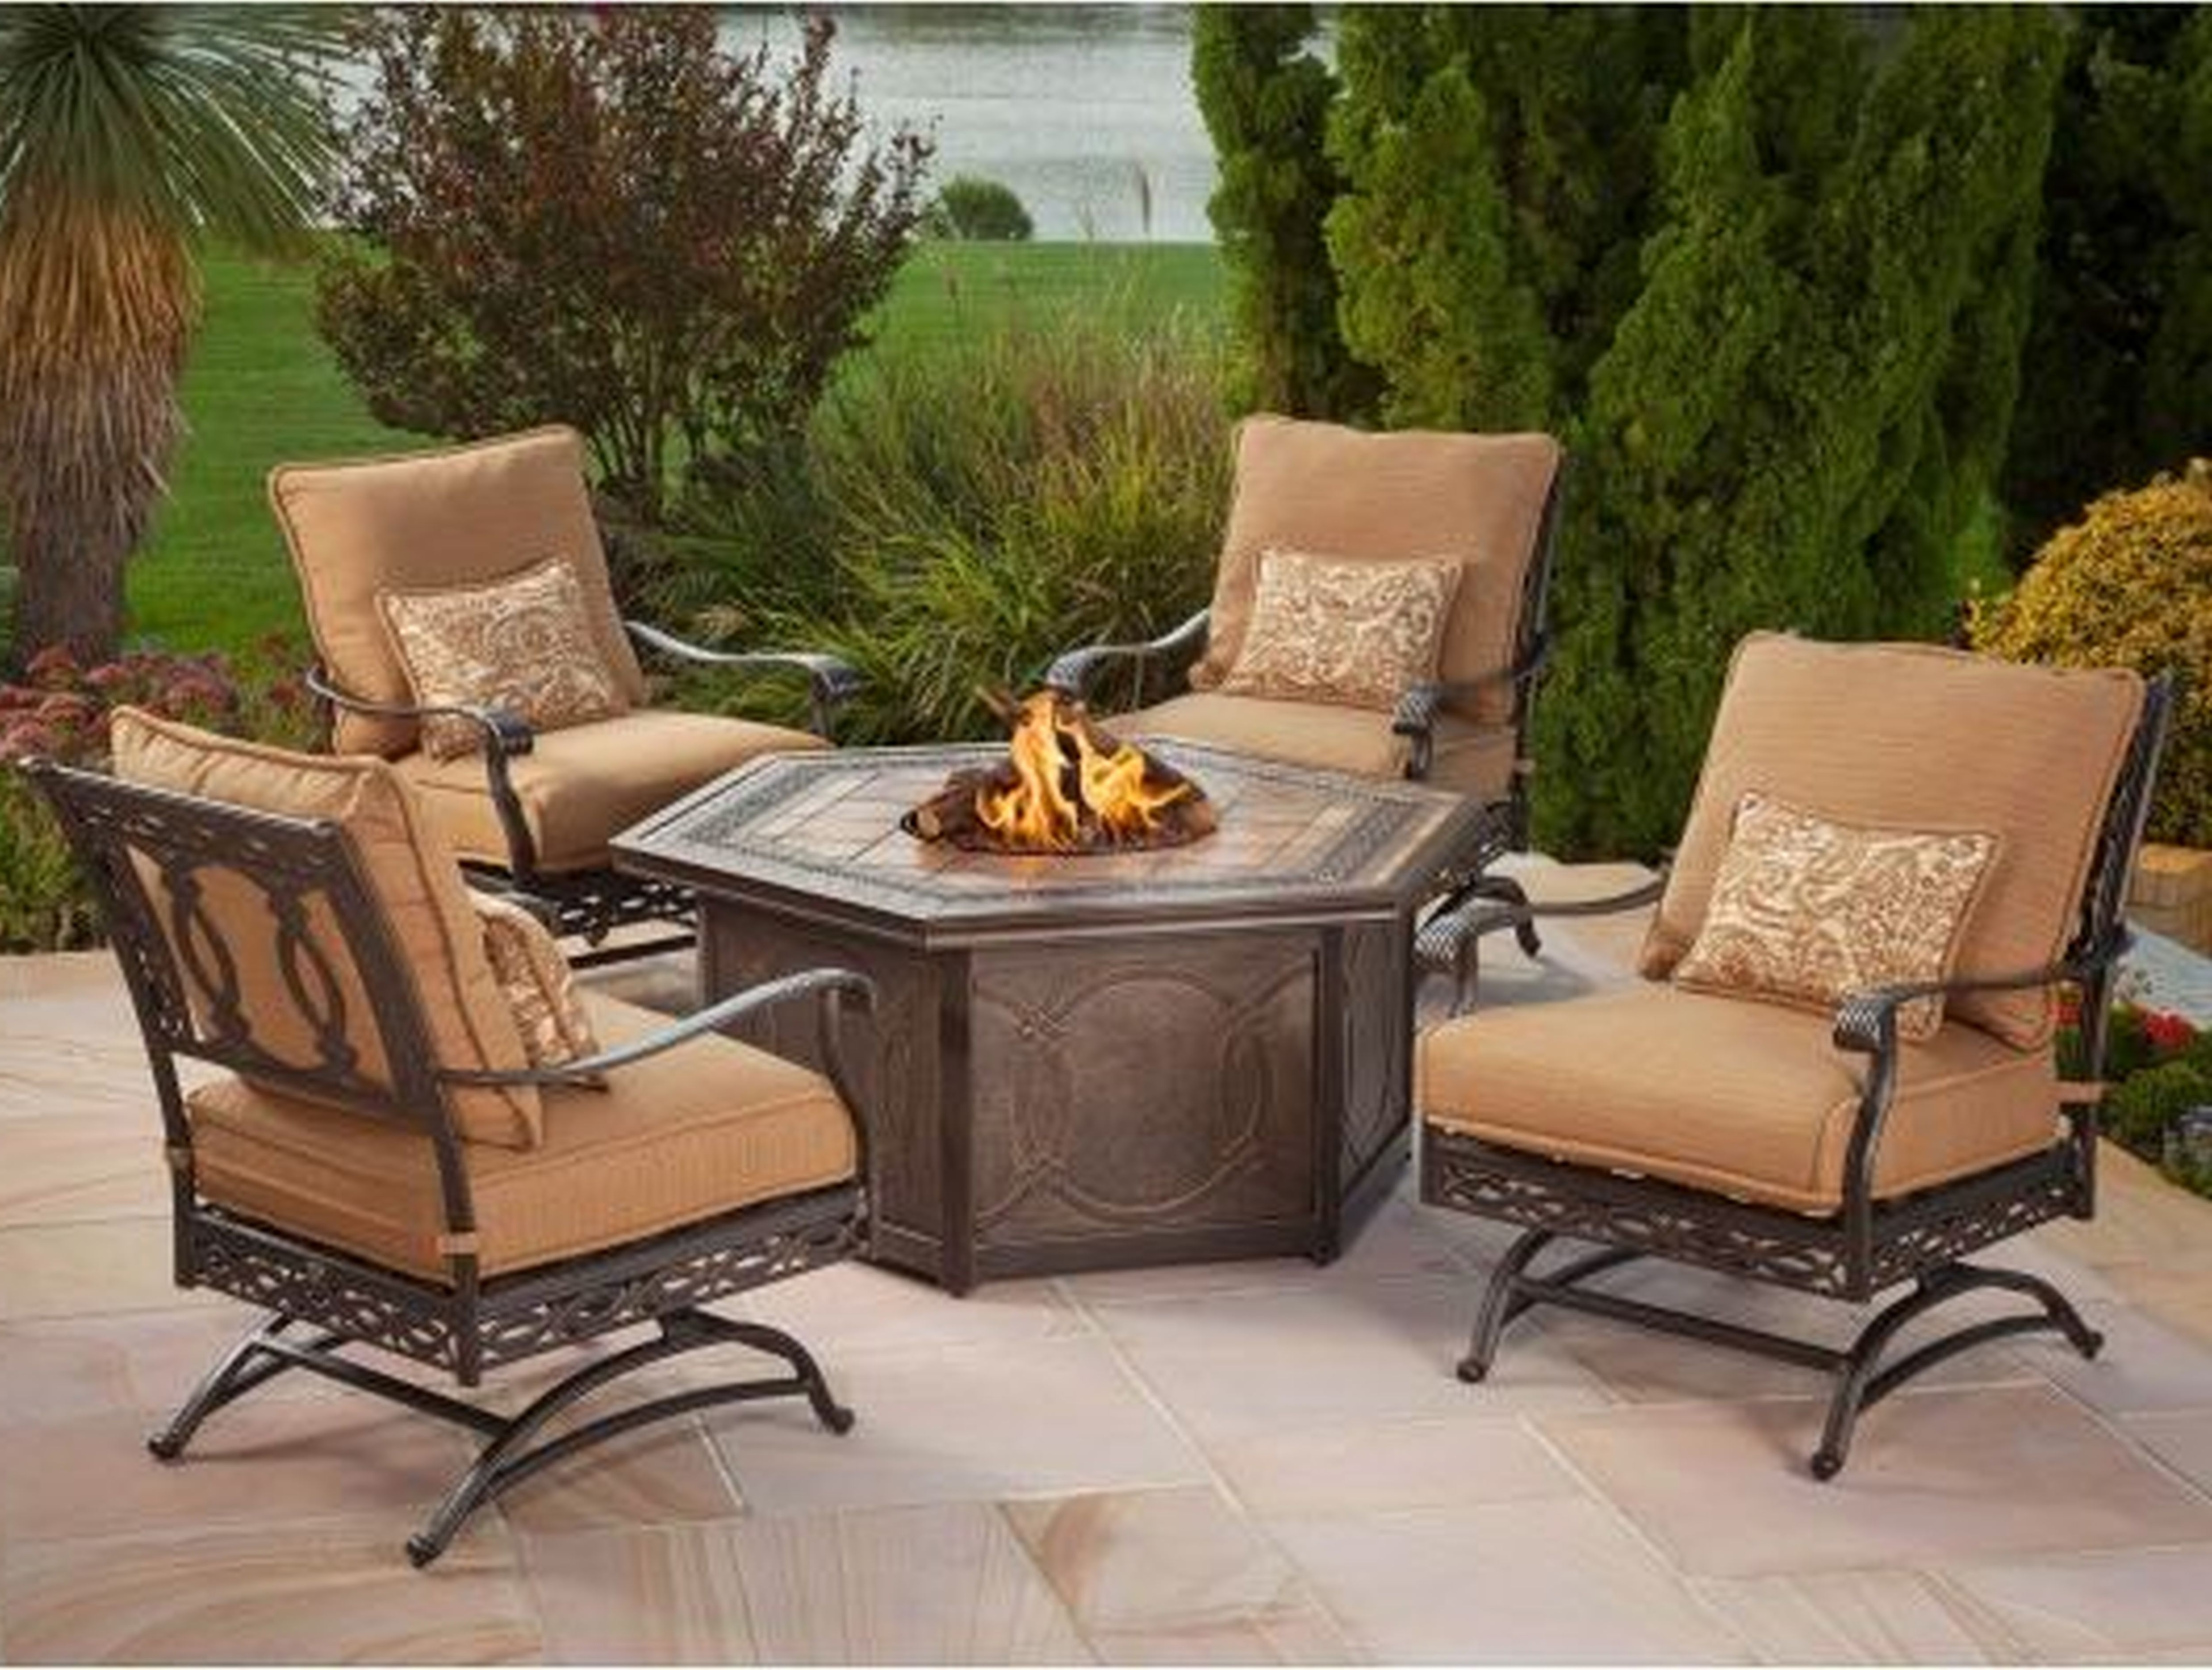 Patio Conversation Sets At Lowes With Most Recent Fortune Lowes Outdoor Furniture Clearance Patio Home Design (View 11 of 15)